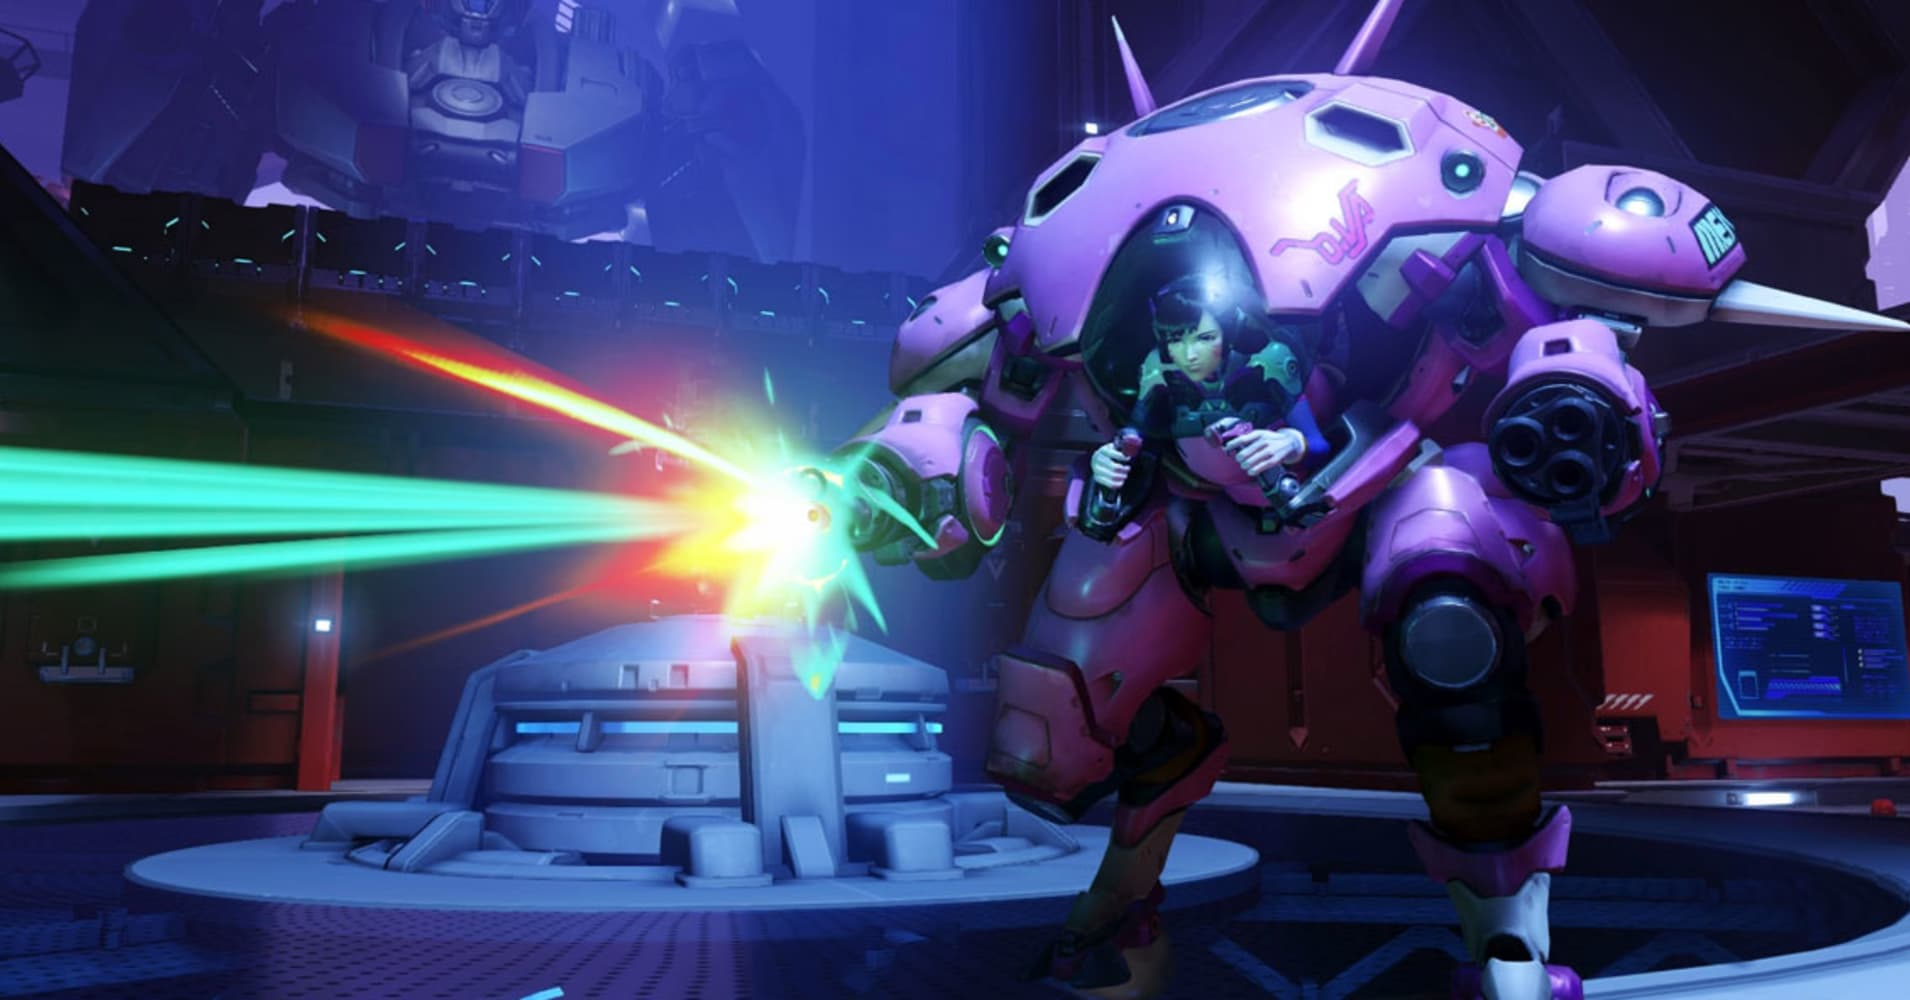 Analyst downgrades Activision on risk Overwatch esports will disappoint